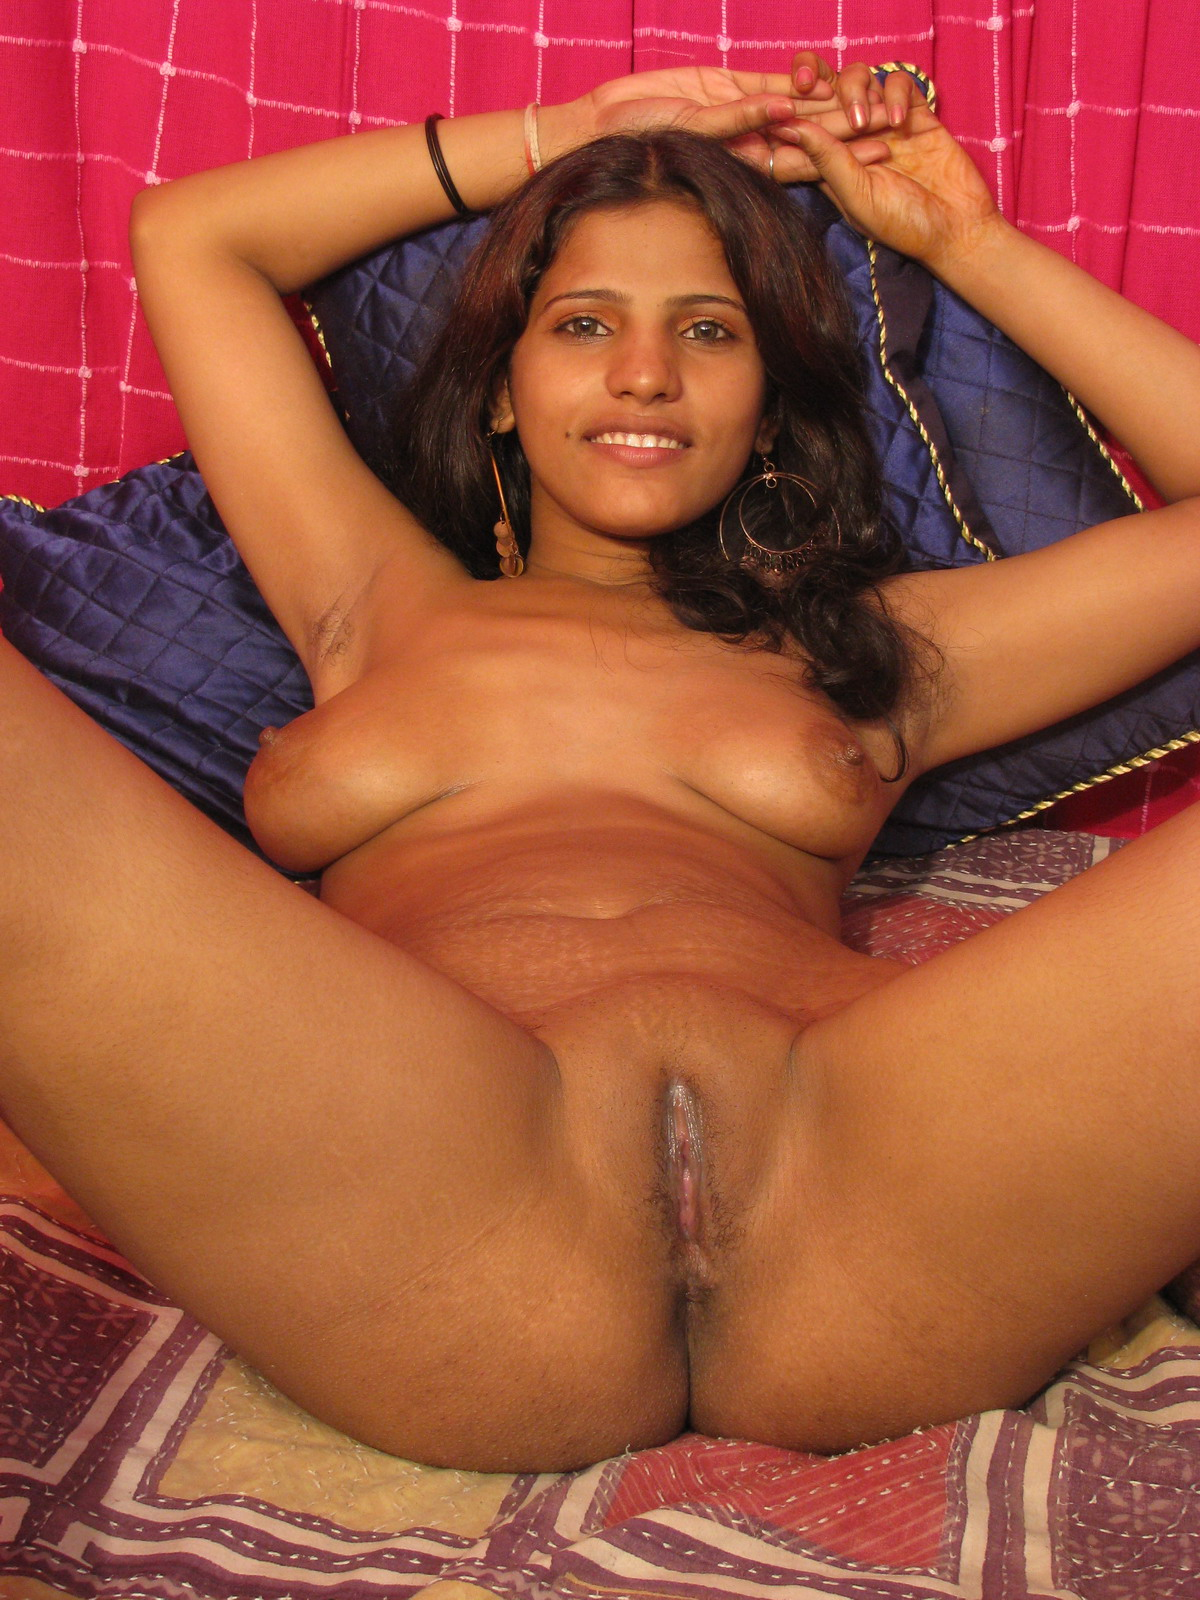 image of call girl sex video